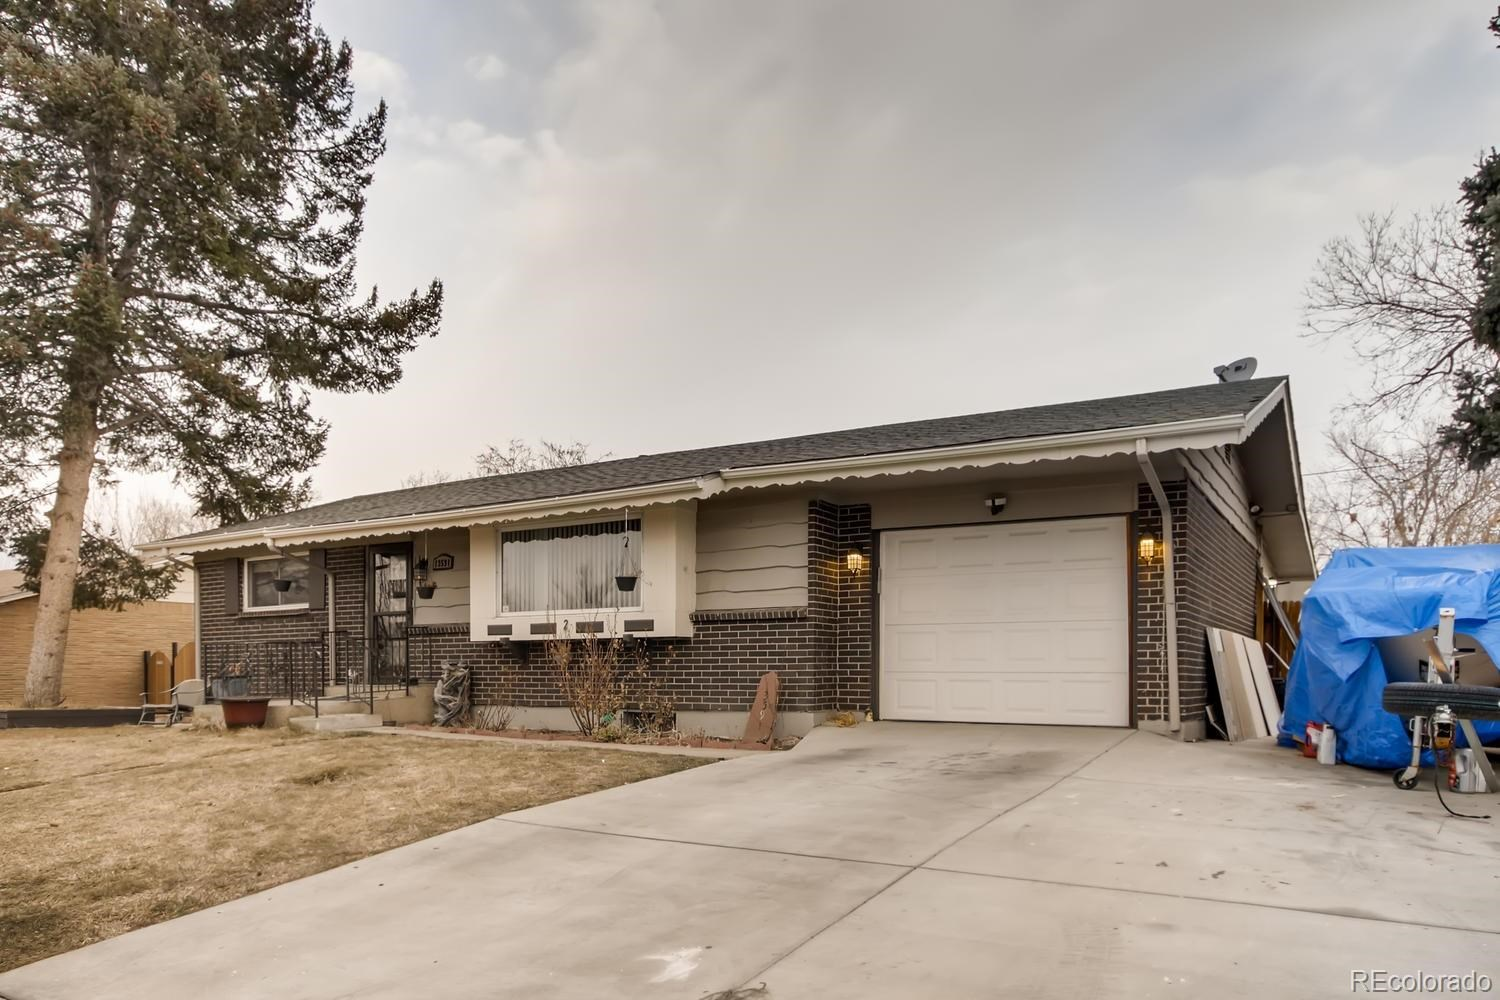 MLS# 5987040 - 1 - 13591 E Exposition Avenue, Aurora, CO 80012